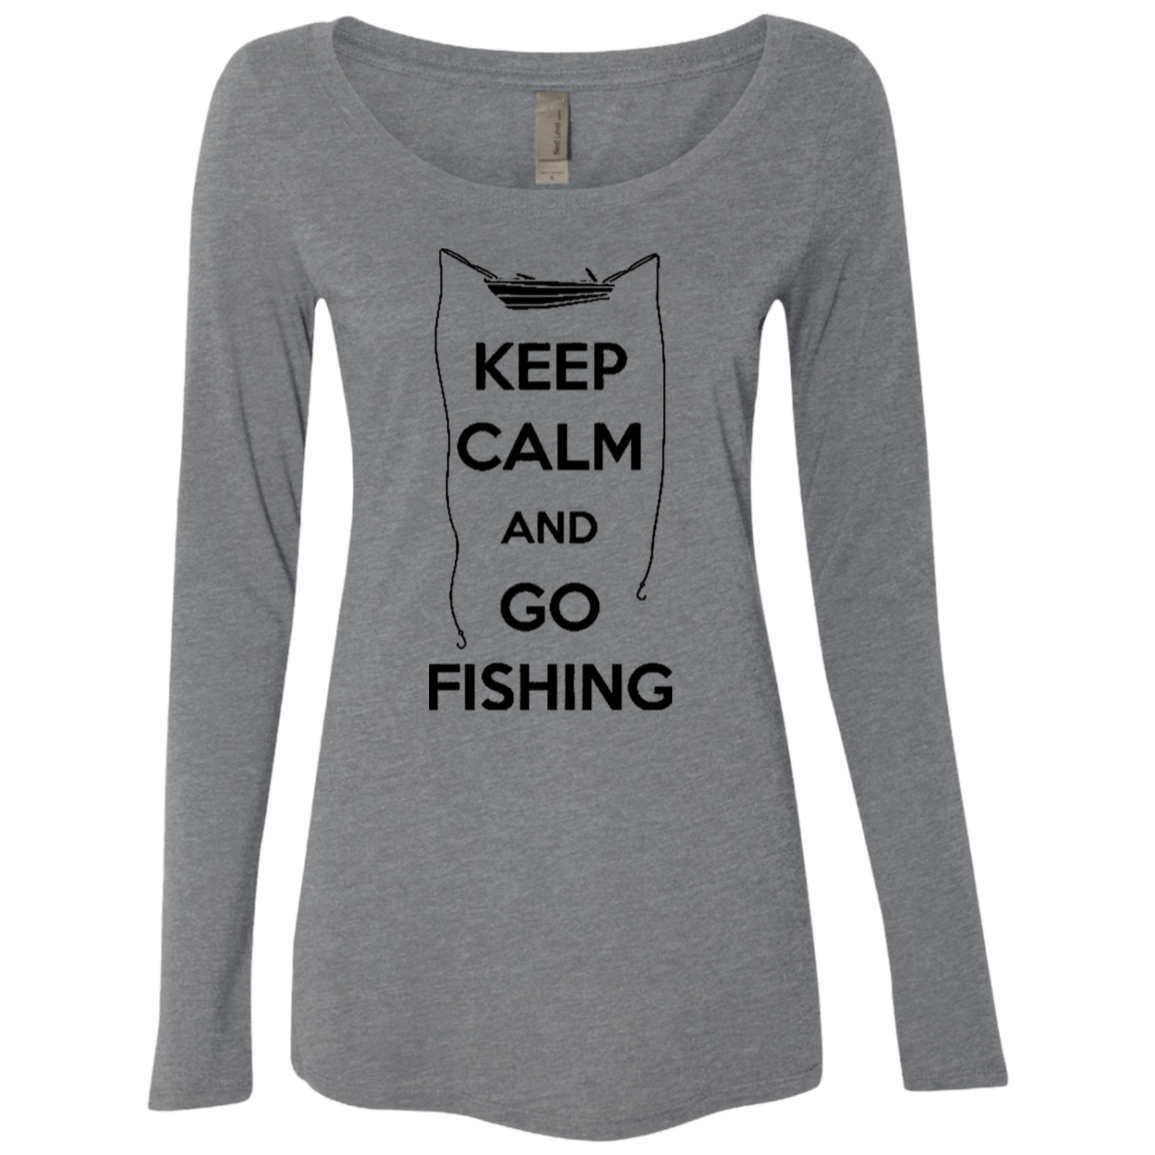 Keep Calm And Go Fishing Women's Long Sleeve Tee